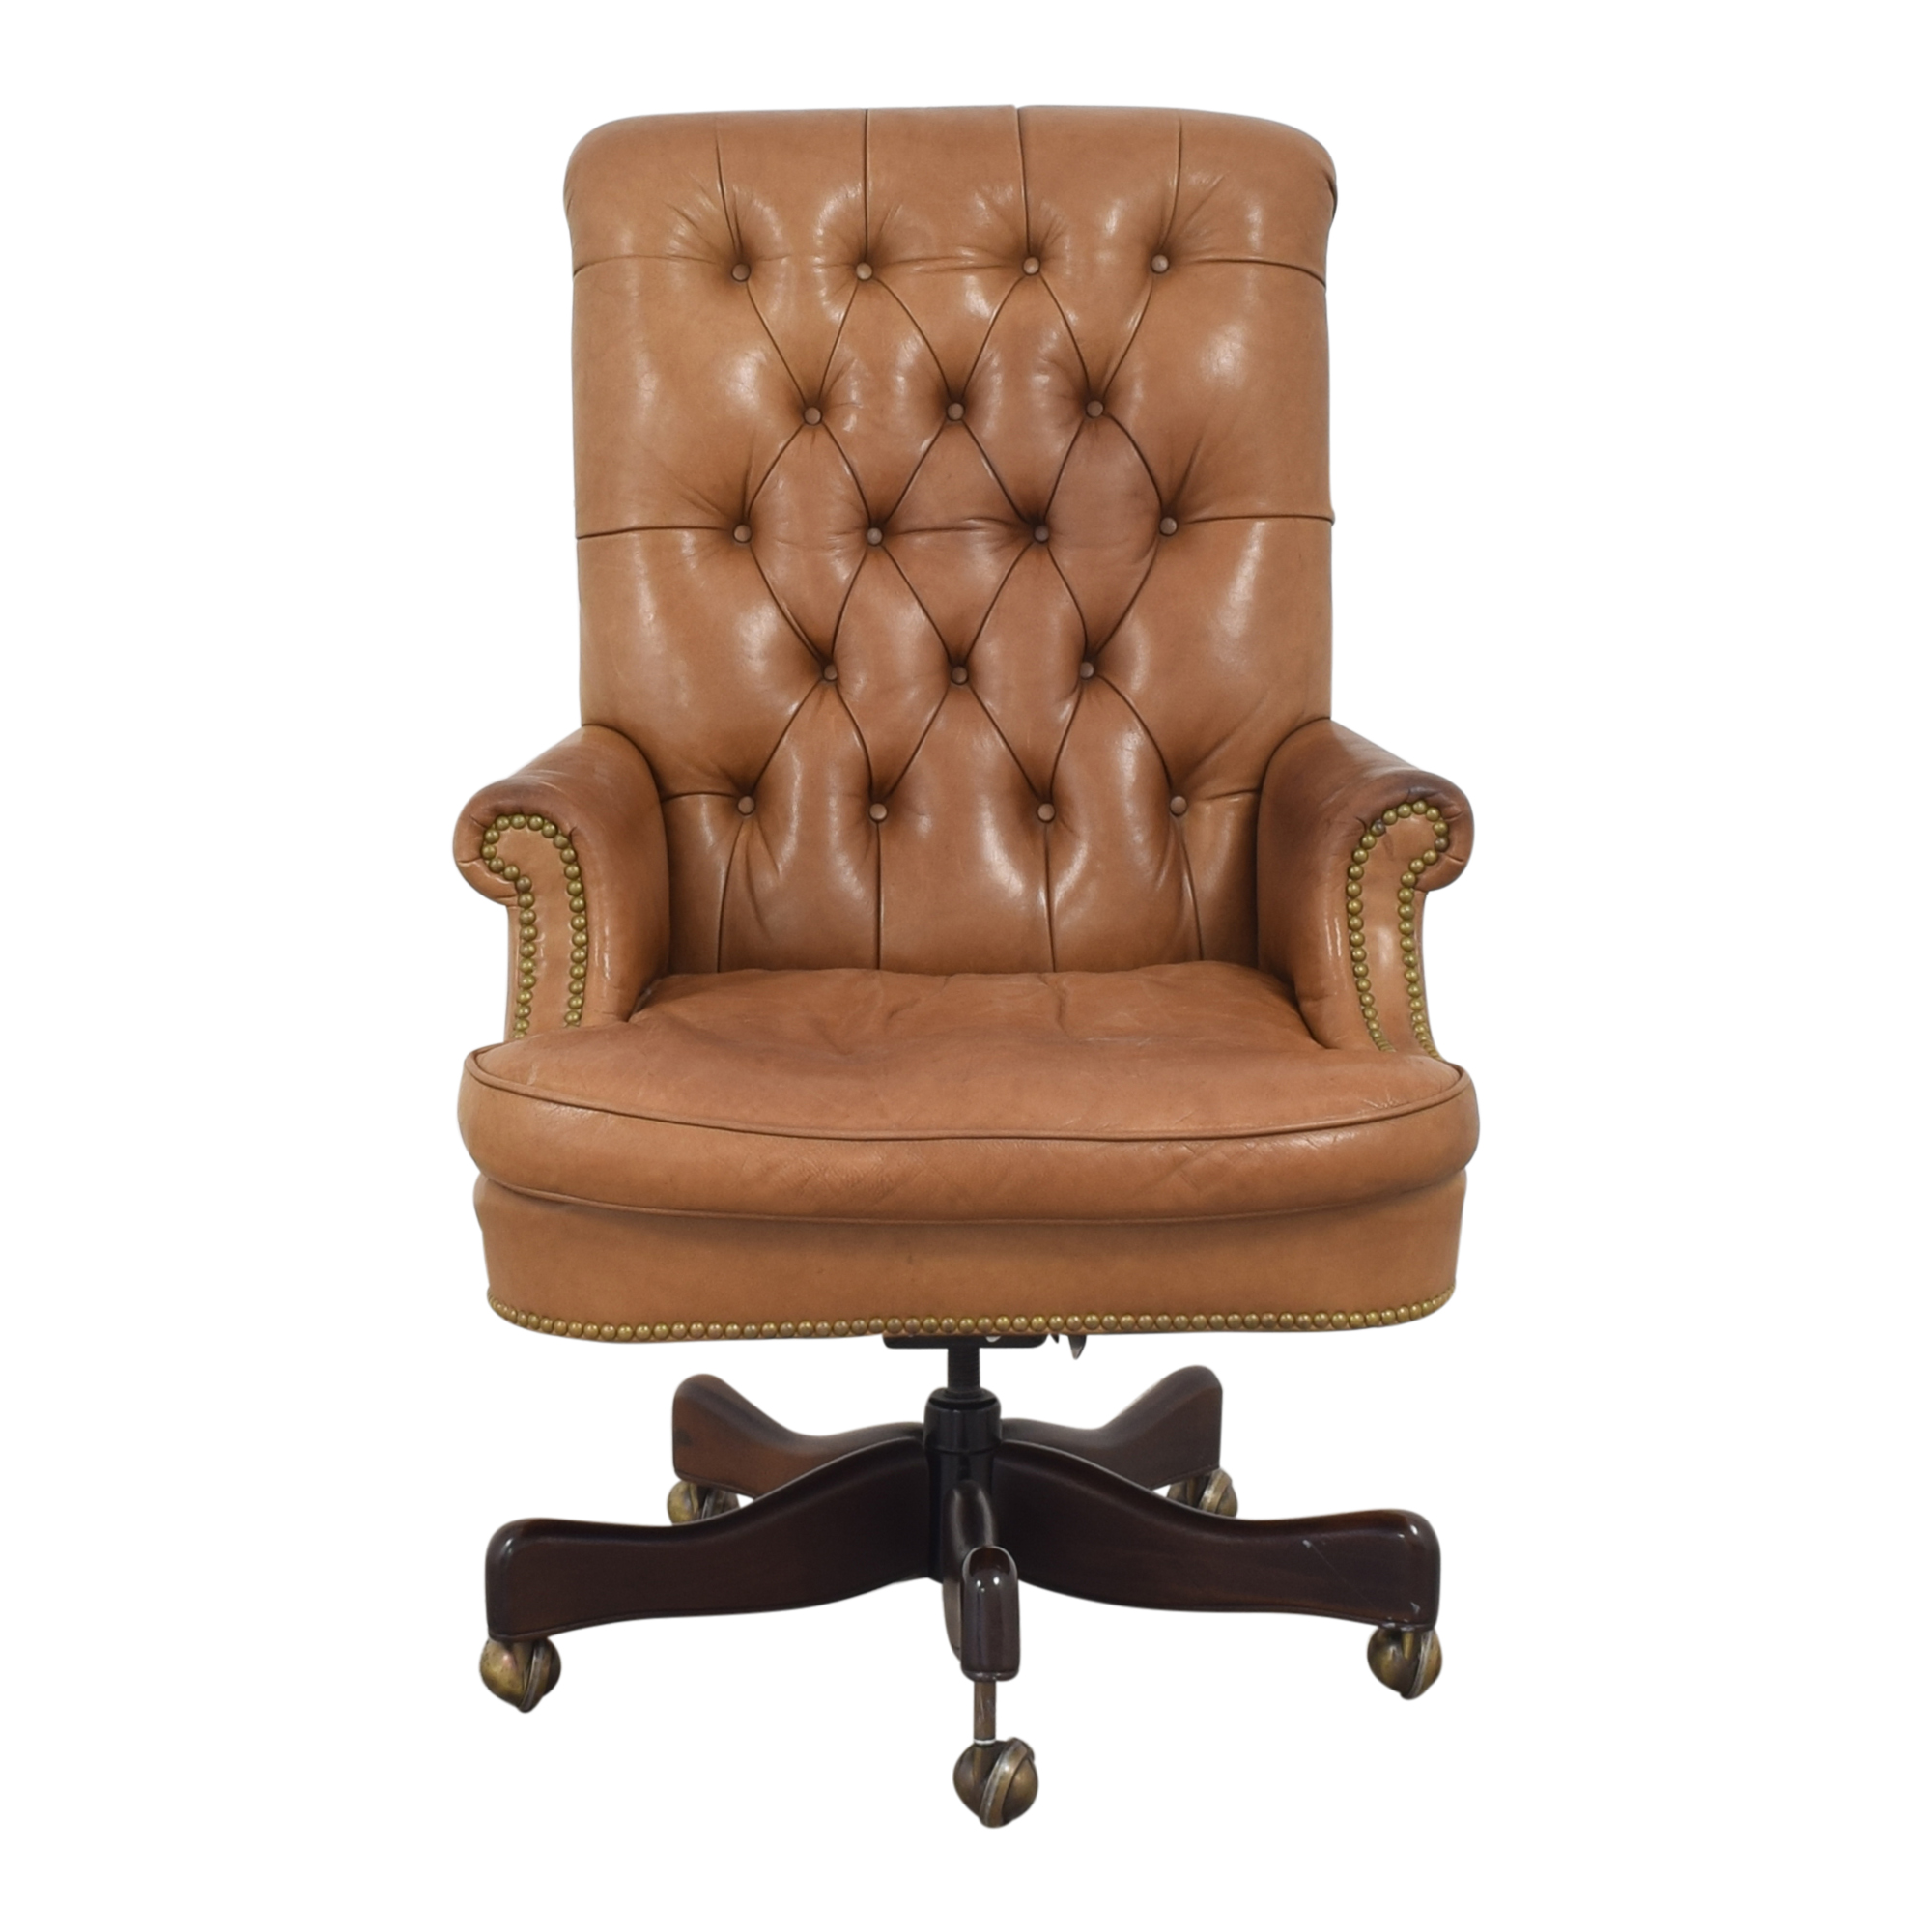 Hickory Chair Hickory Chair Tufted Swivel Desk Chair brown